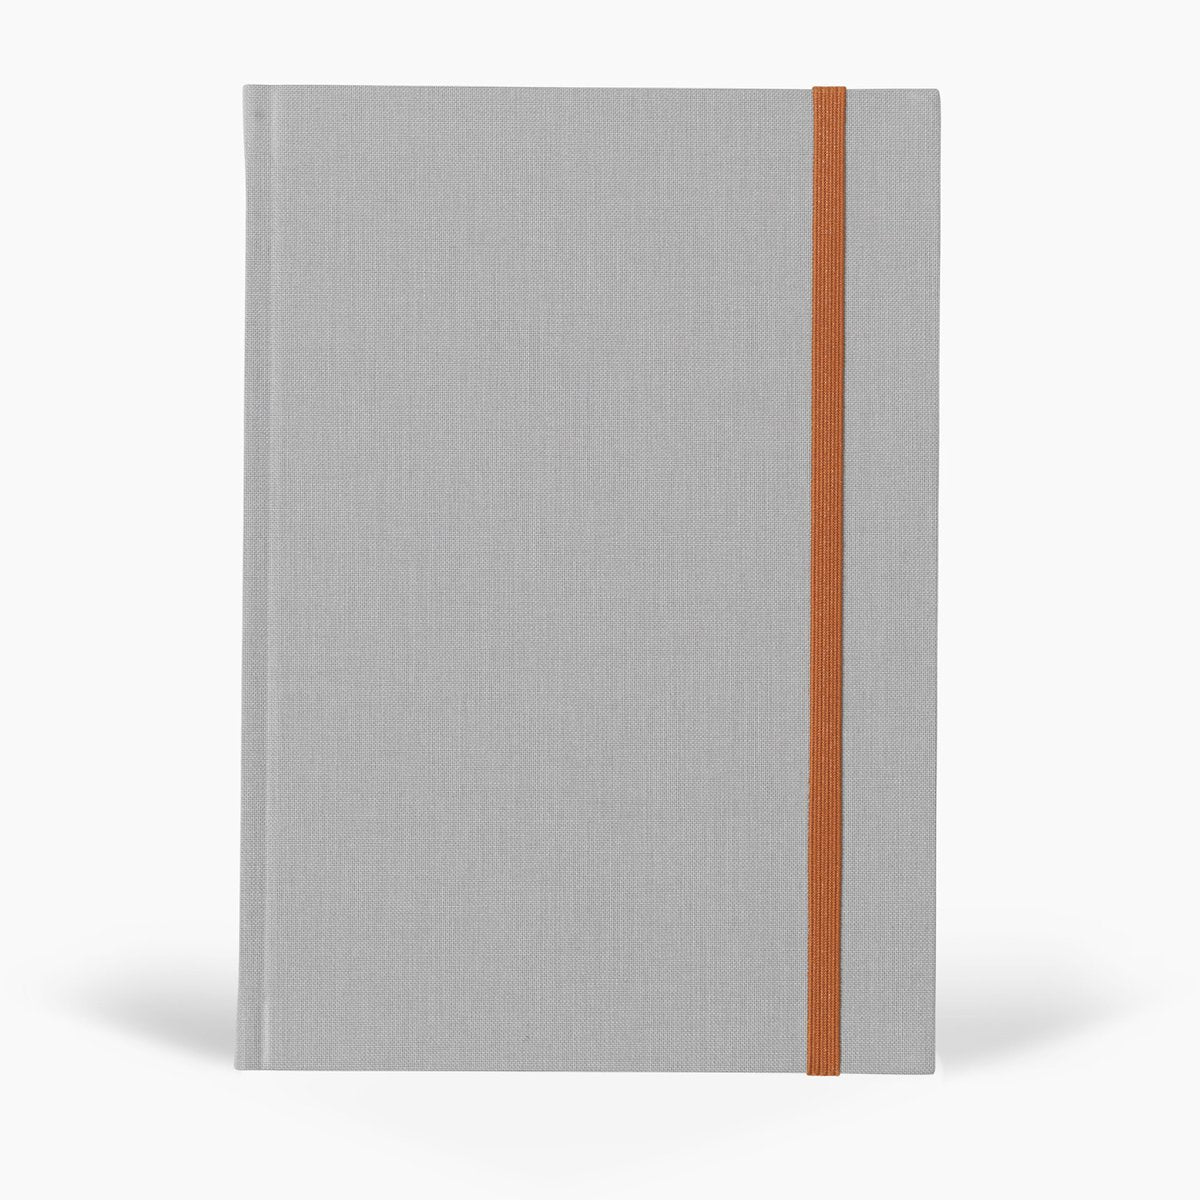 Bea Notebook, Medium - Light Gray